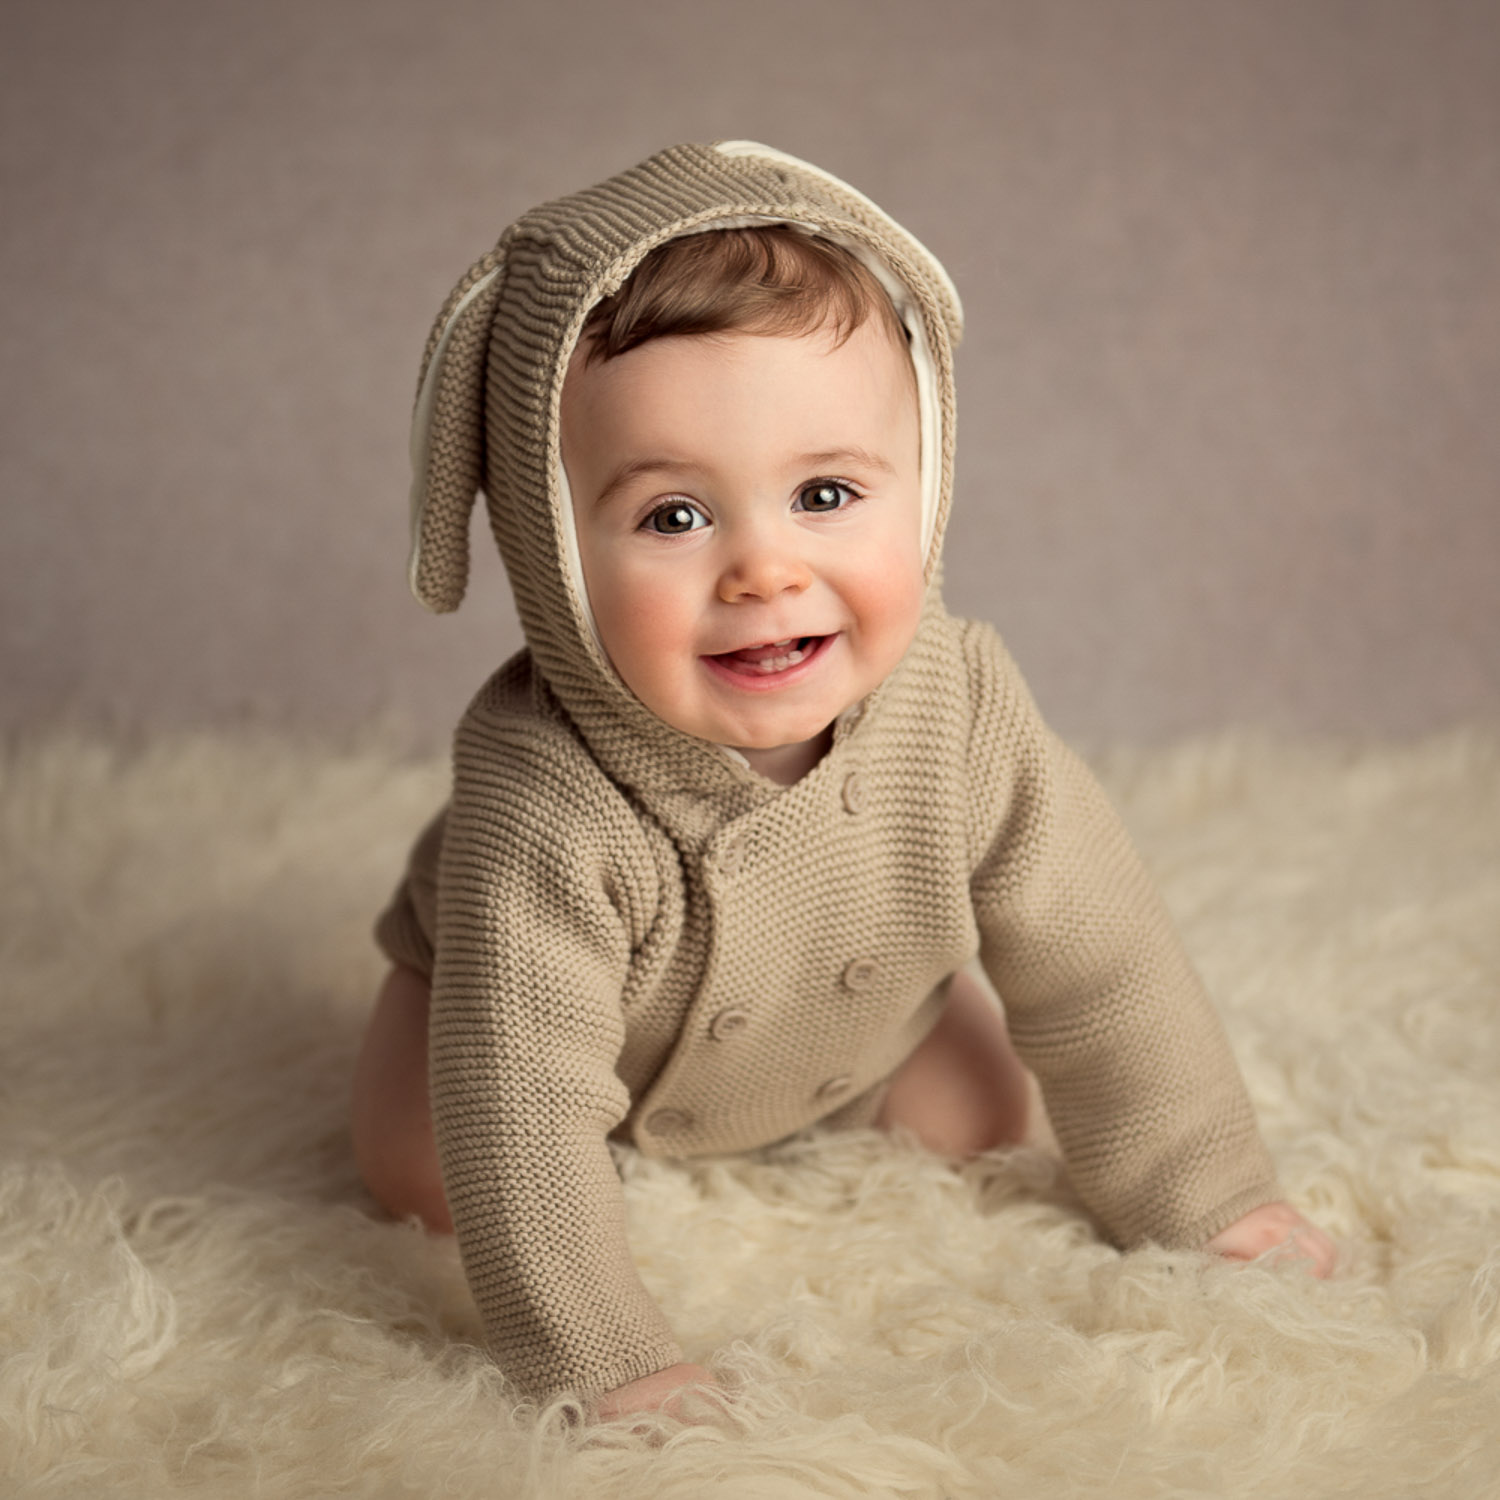 baby photography by auckland photographer siobhan kelly